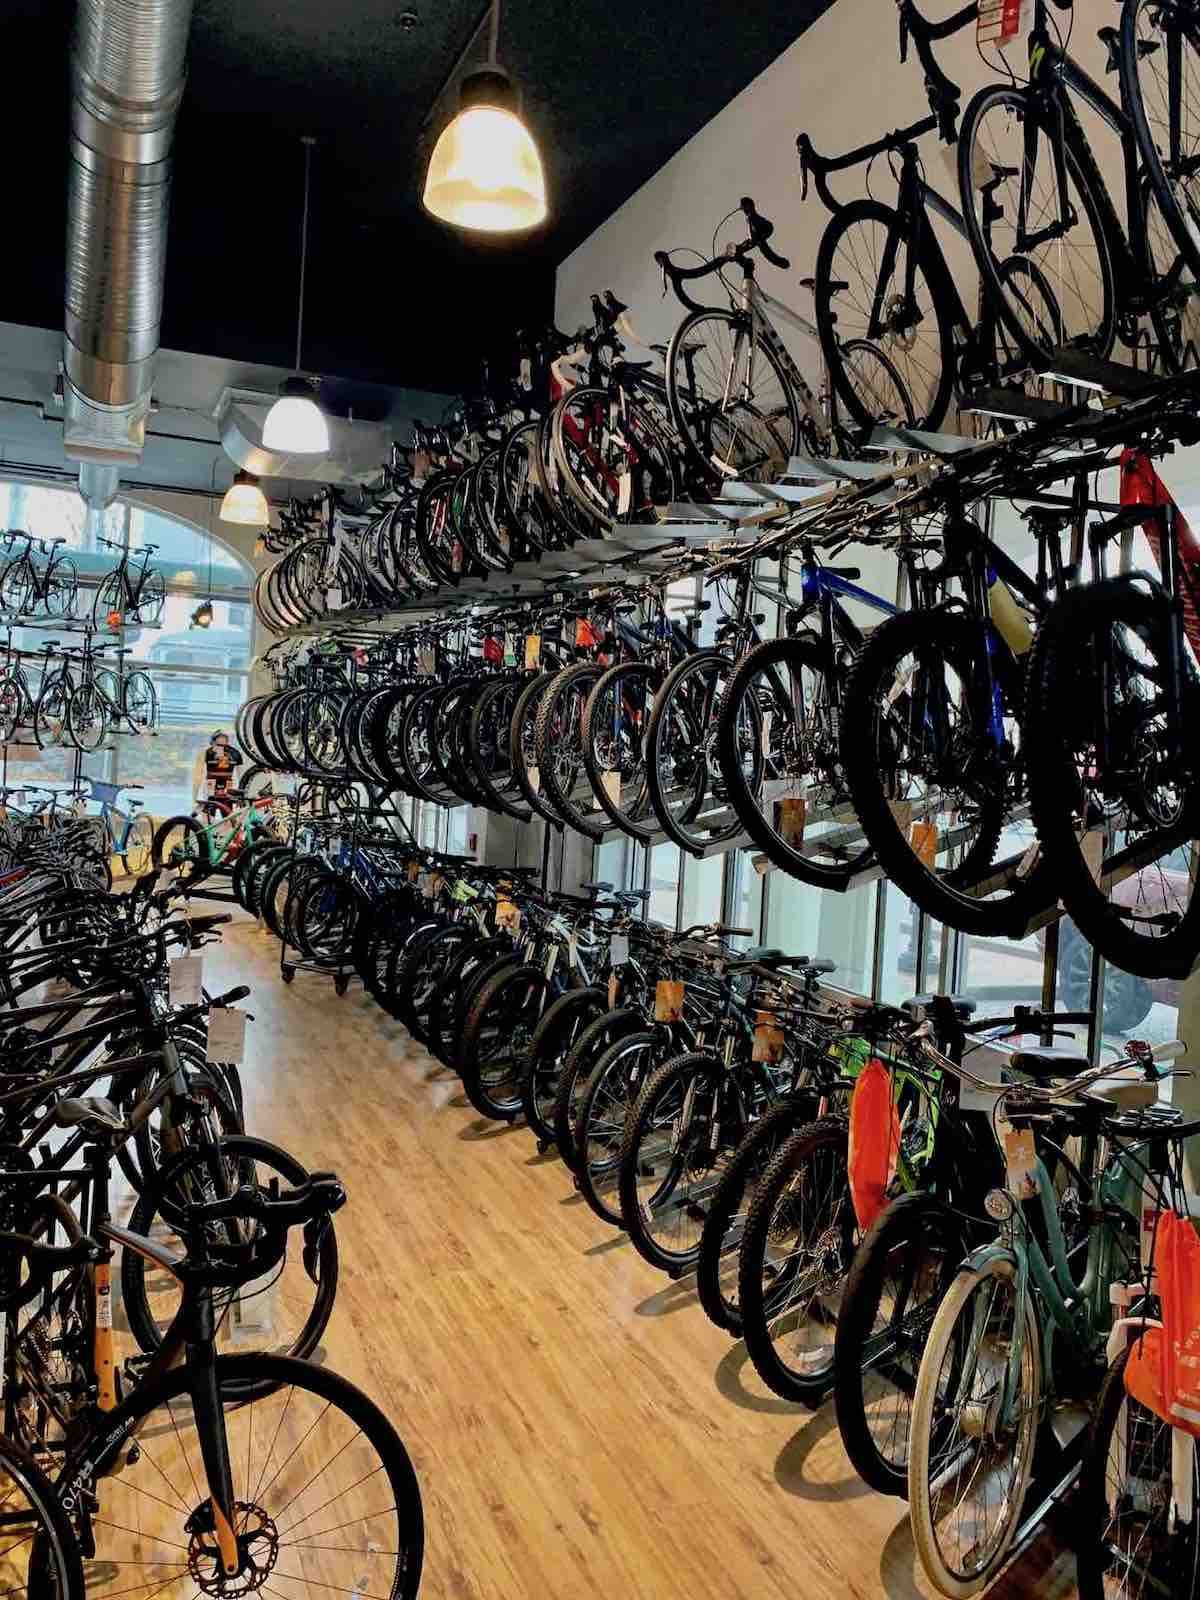 Shop Inventory Bicycles Trek Specialized Bionx Electric Bikes Mountain Road